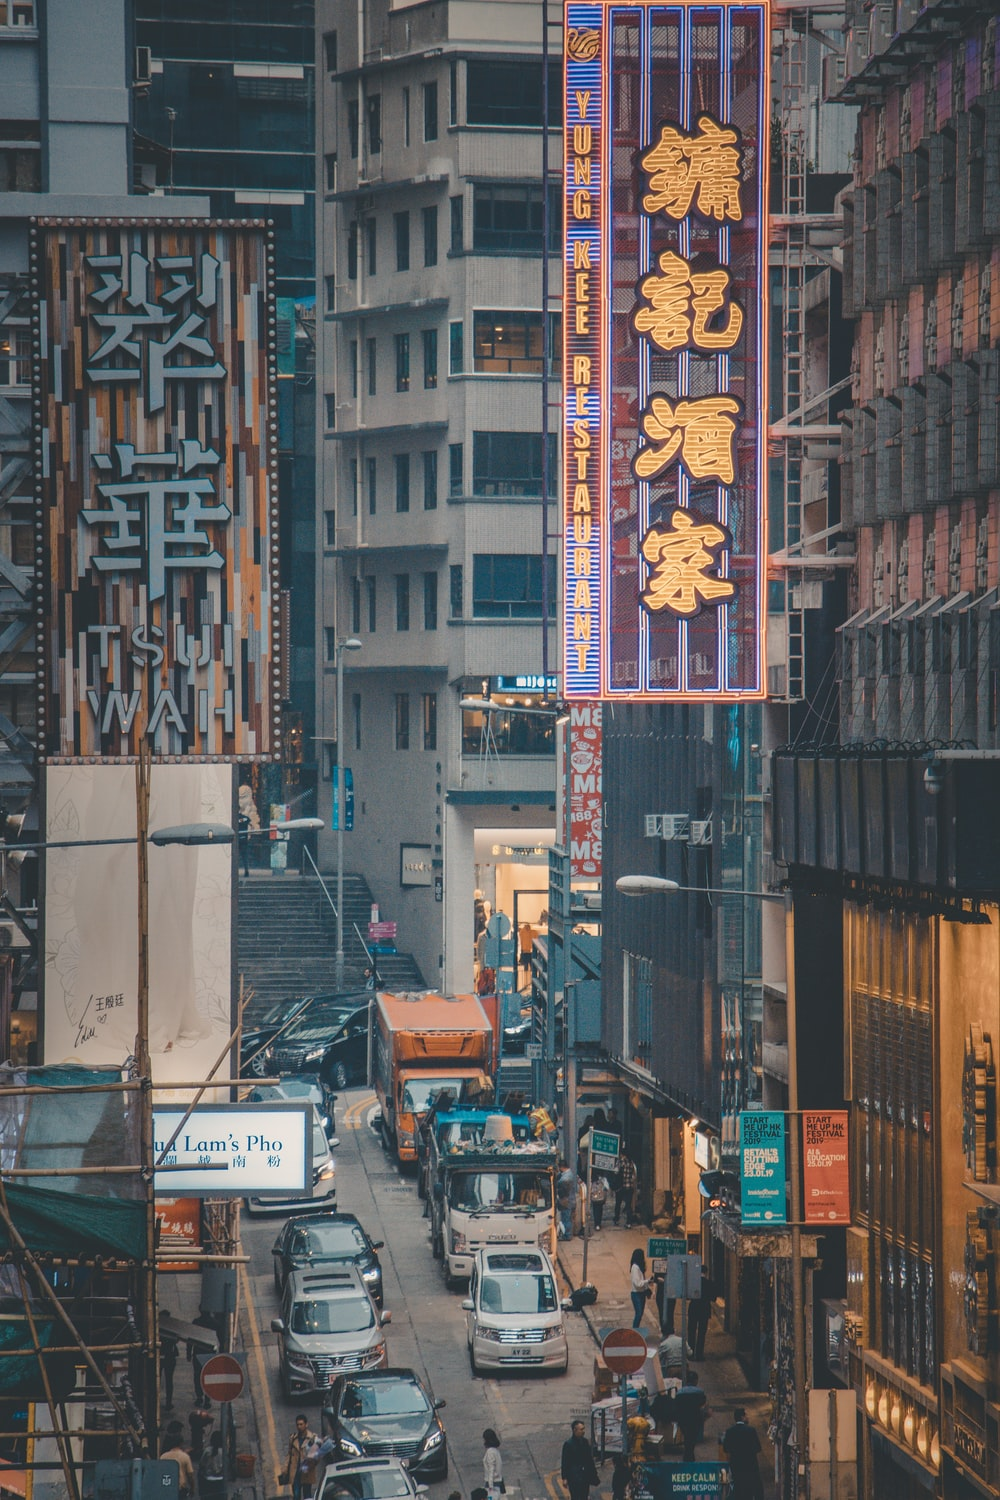 view of a Chinese road and buildings